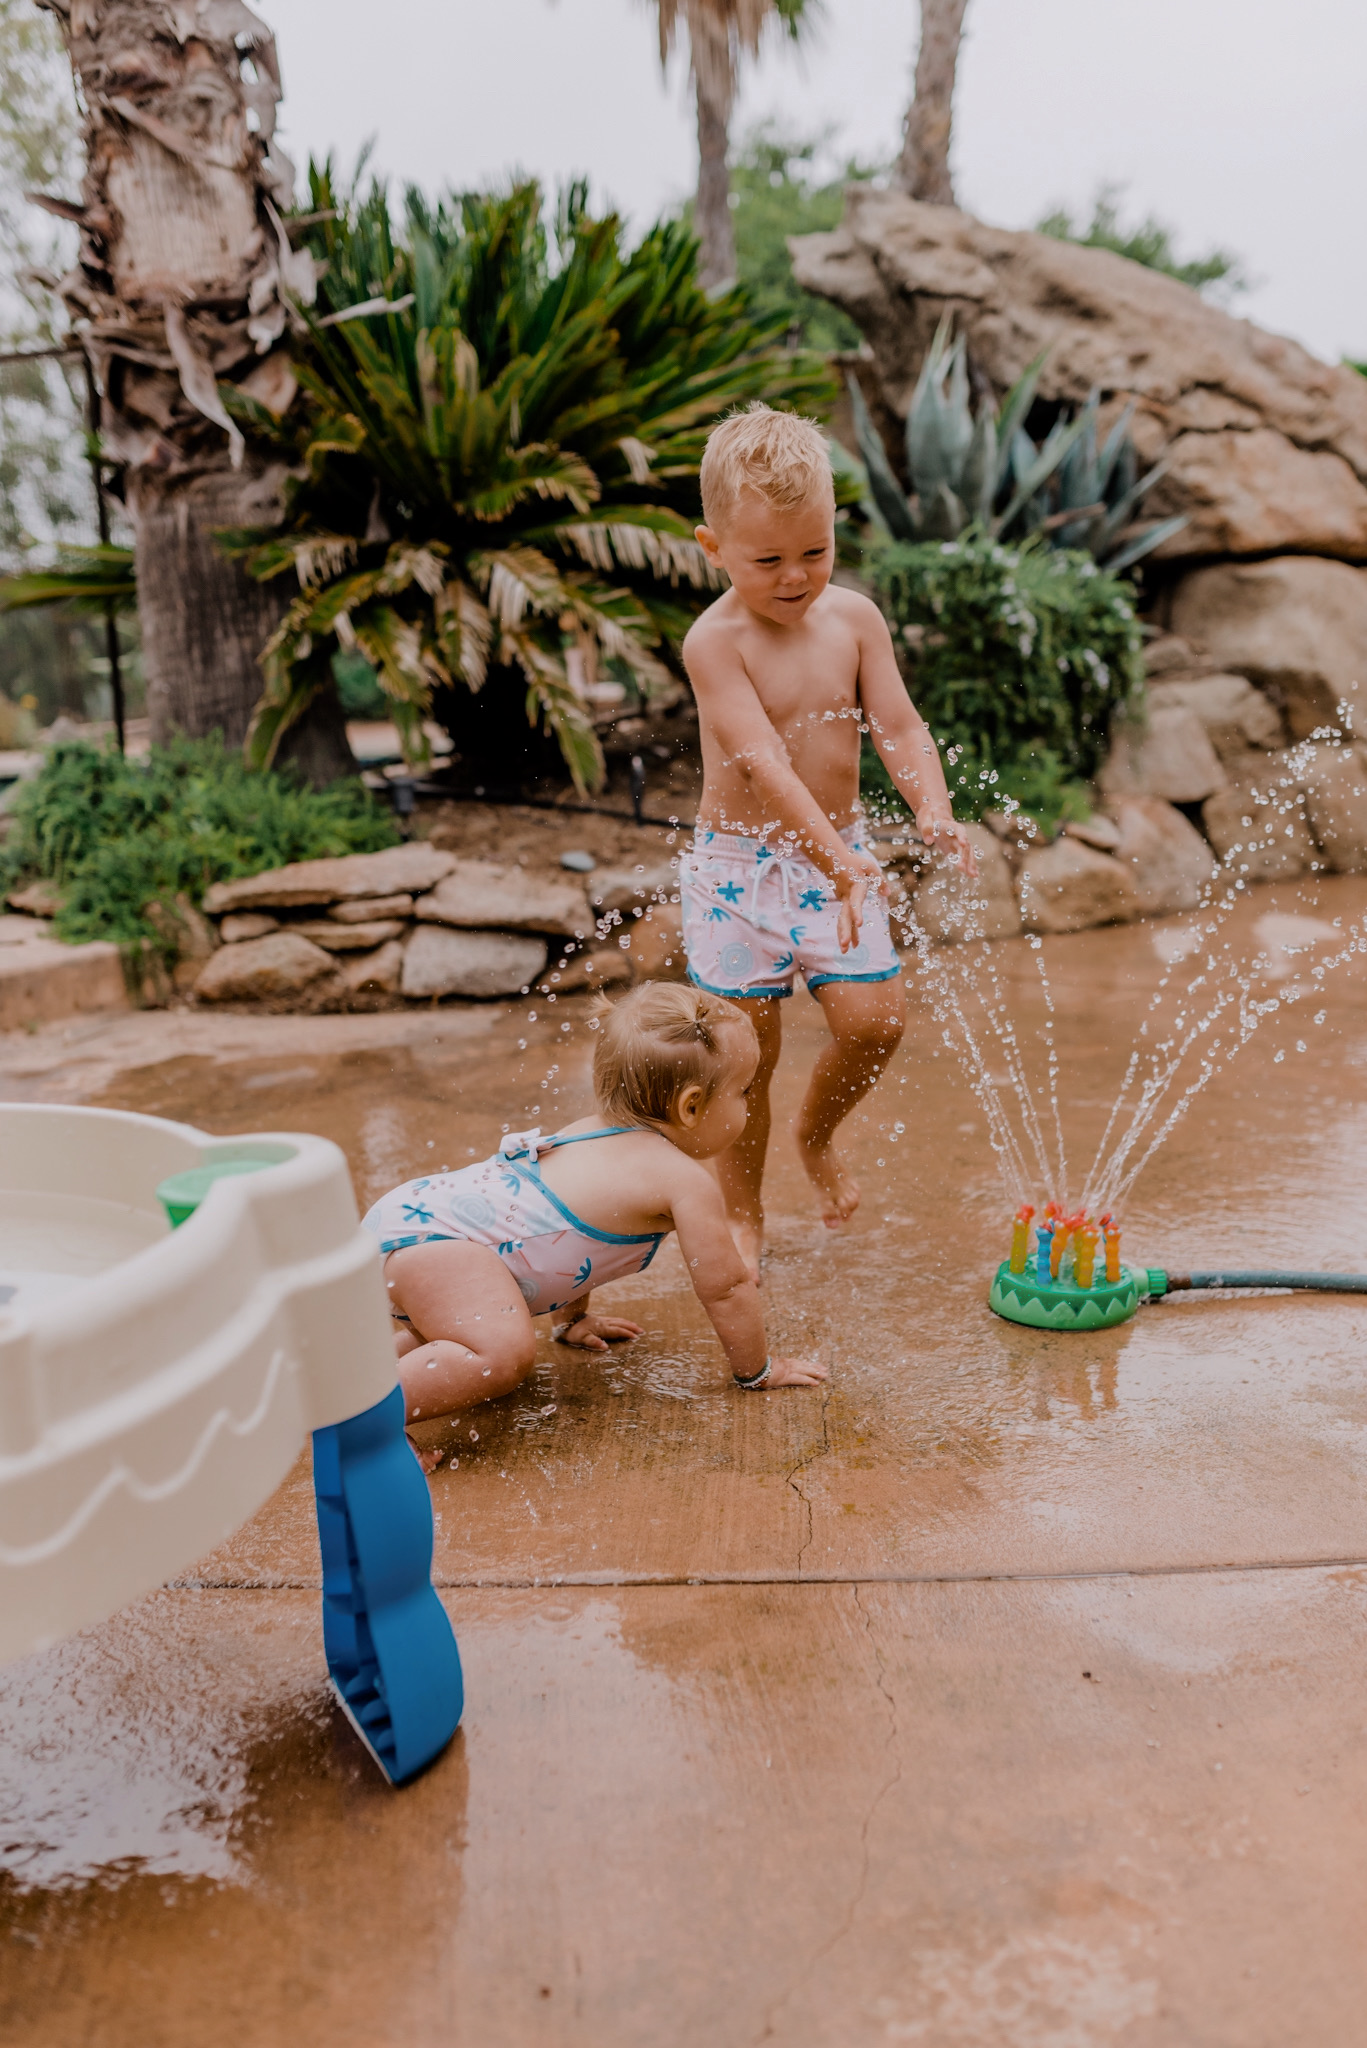 18 SUPER FUN OUTDOOR ACTIVITIES FOR YOUR FAMILY THIS SUMMER featured by top San Diego lifestyle blogger, Navy Grace | Family Outdoor Activities by popular San Diego lifestyle blog, Navy Grace: image of a young boy and baby girl playing with a Melissa & Doug Splash Patrol Sprinkler.